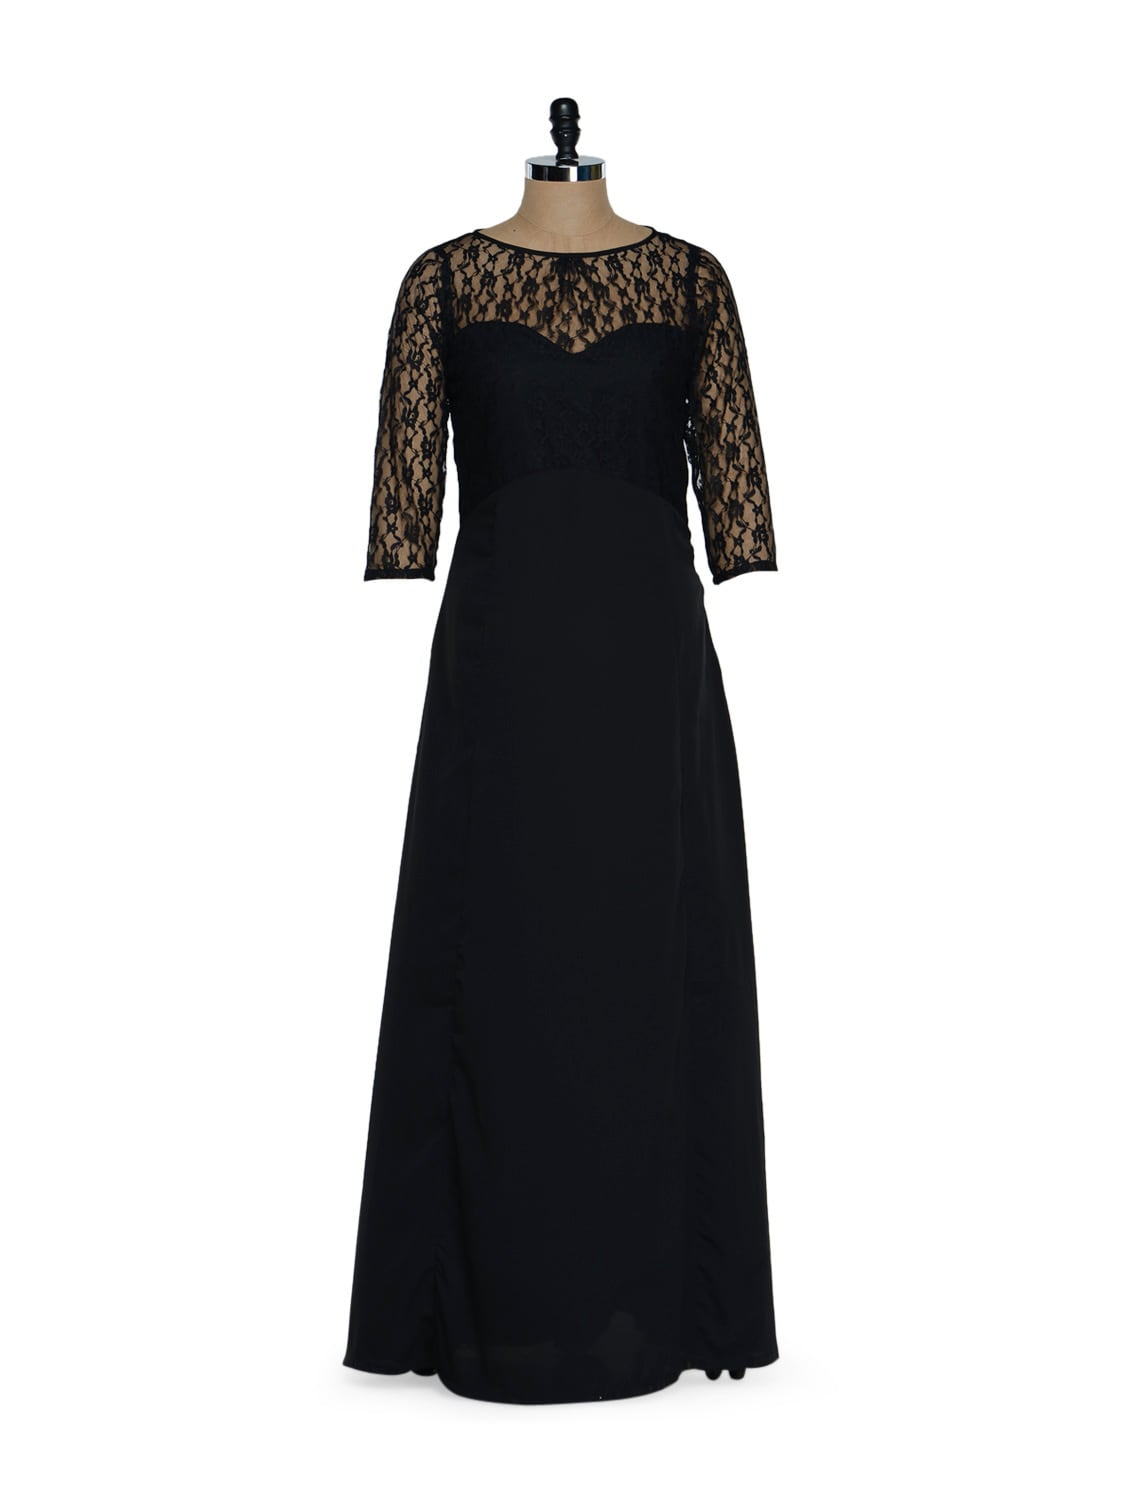 Black Long Dress With Polyester Lace Shoulder And Neck Detailing - Eavan